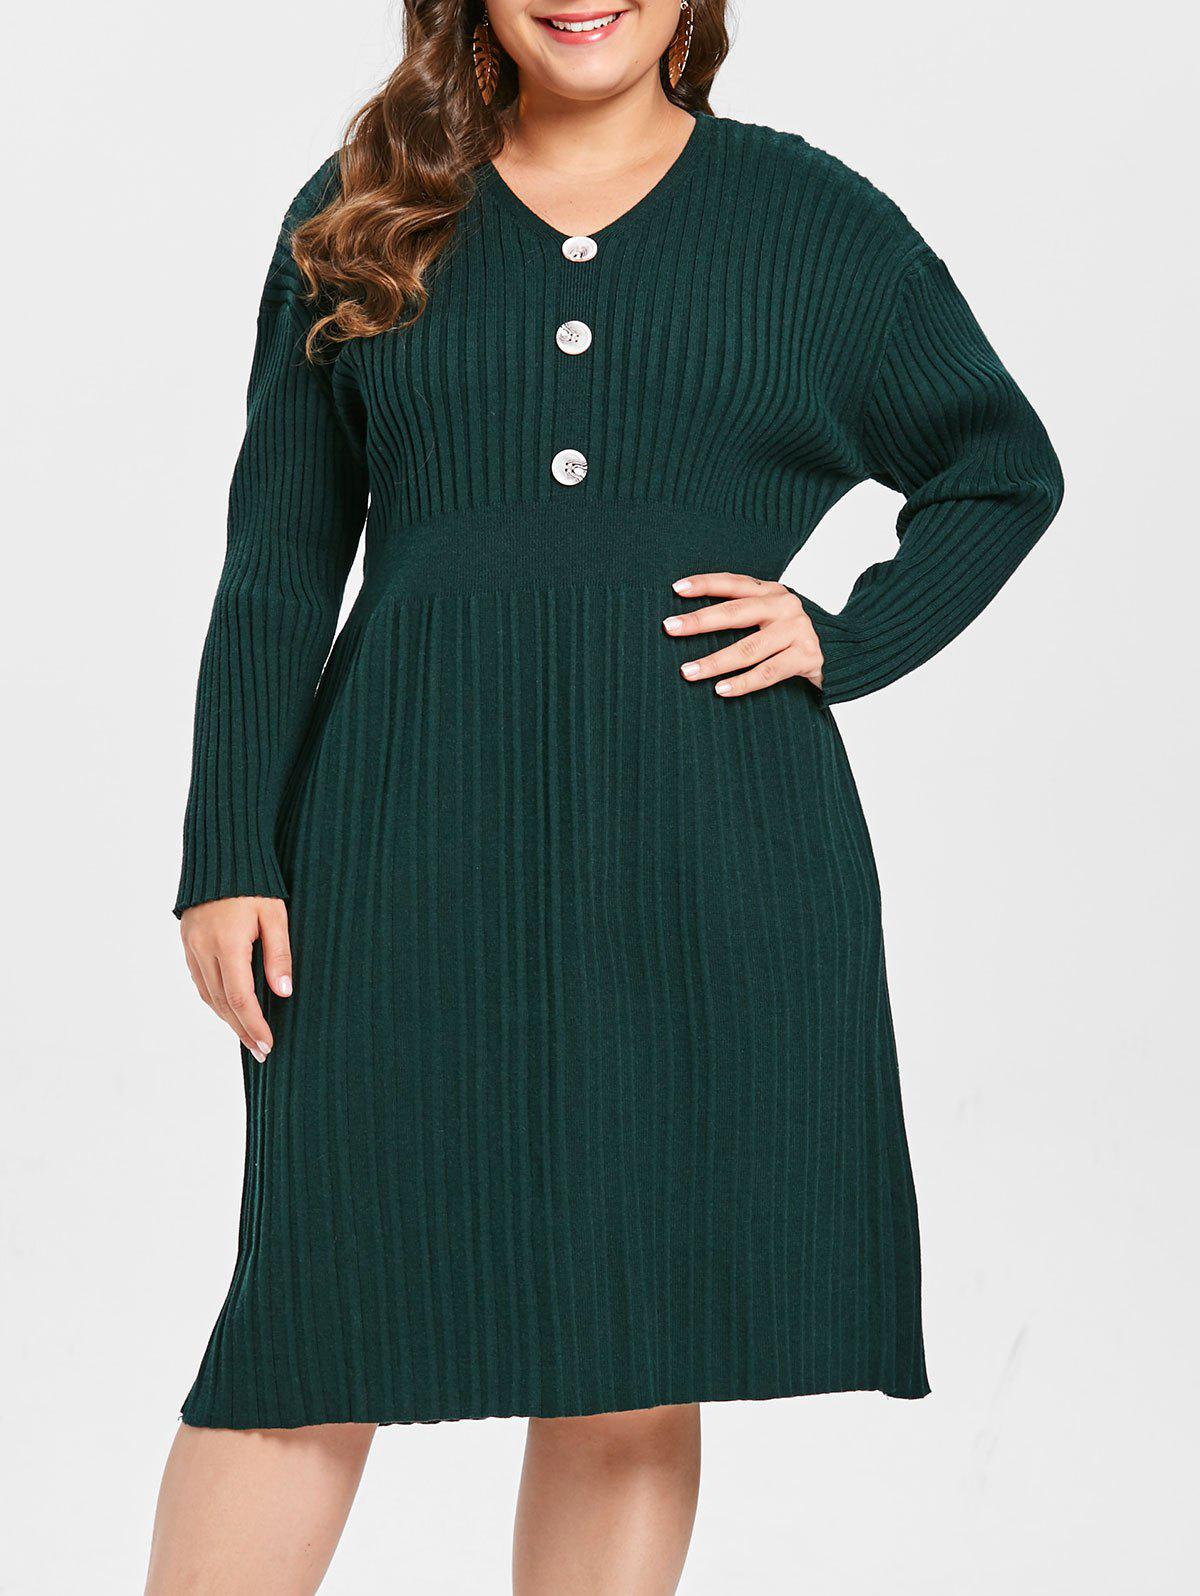 Trendy Plus Size Ribbed Sweater Dress with Buttons